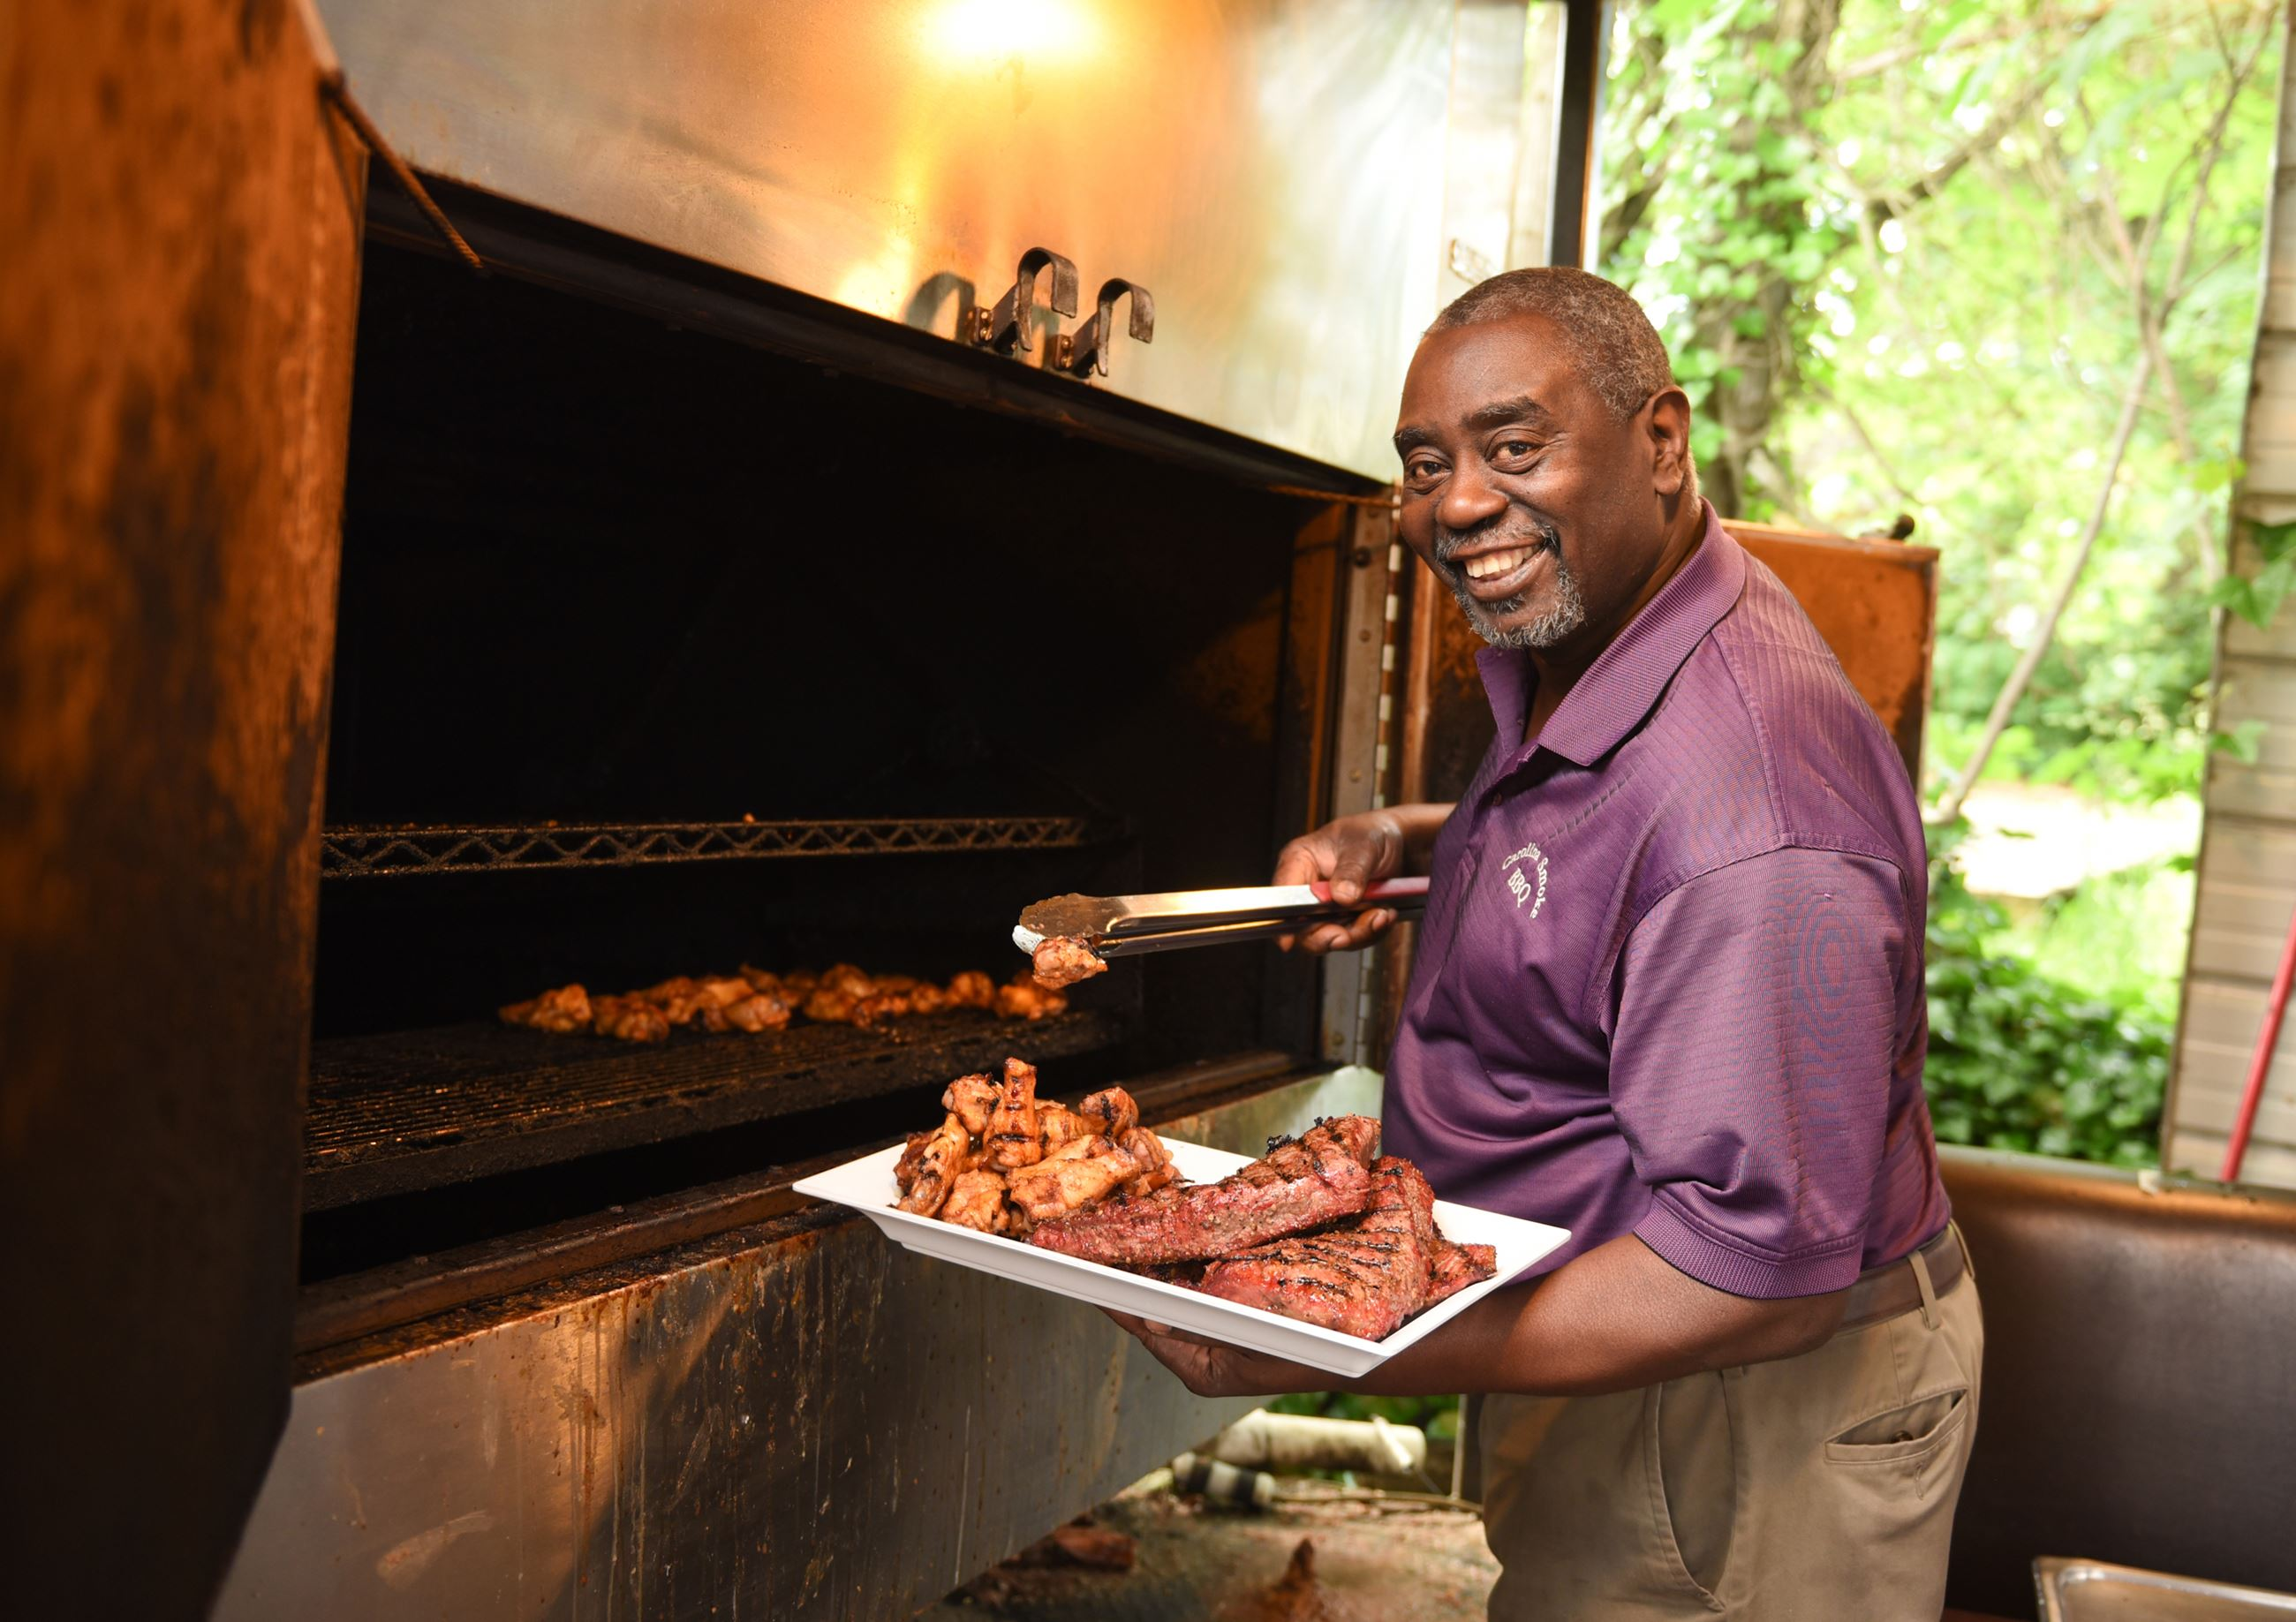 Man holding plate of bar-b-que meat